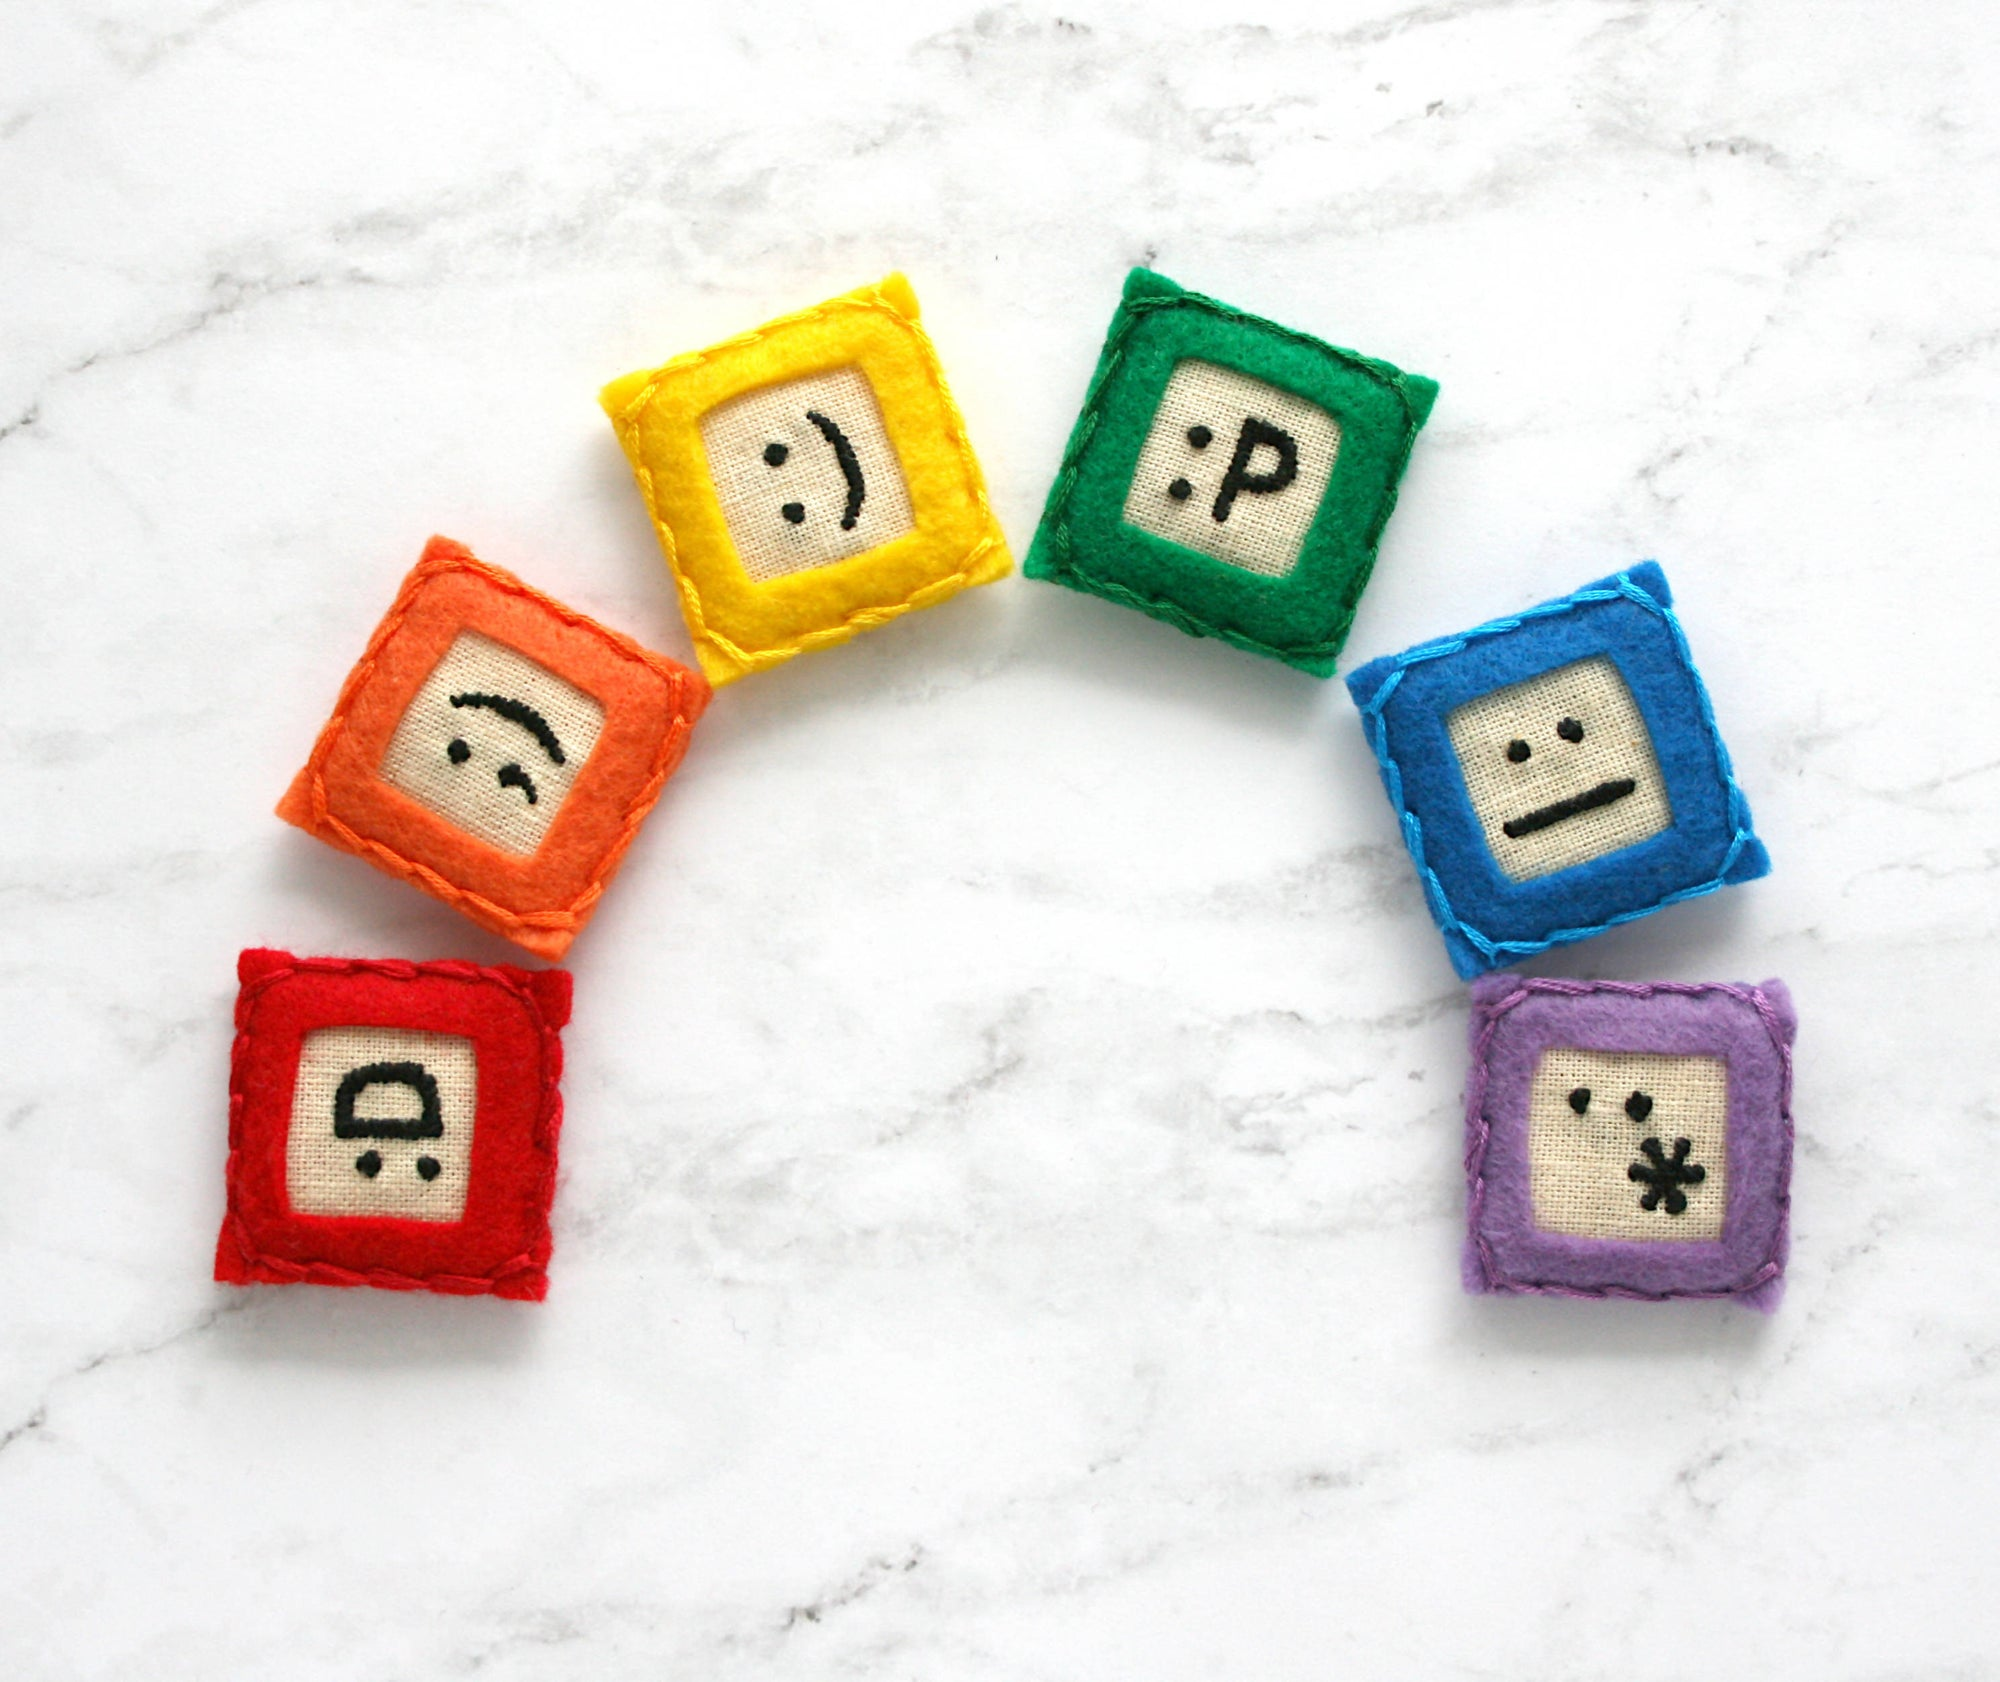 embroidered emoji magnets - set of 6 (original)